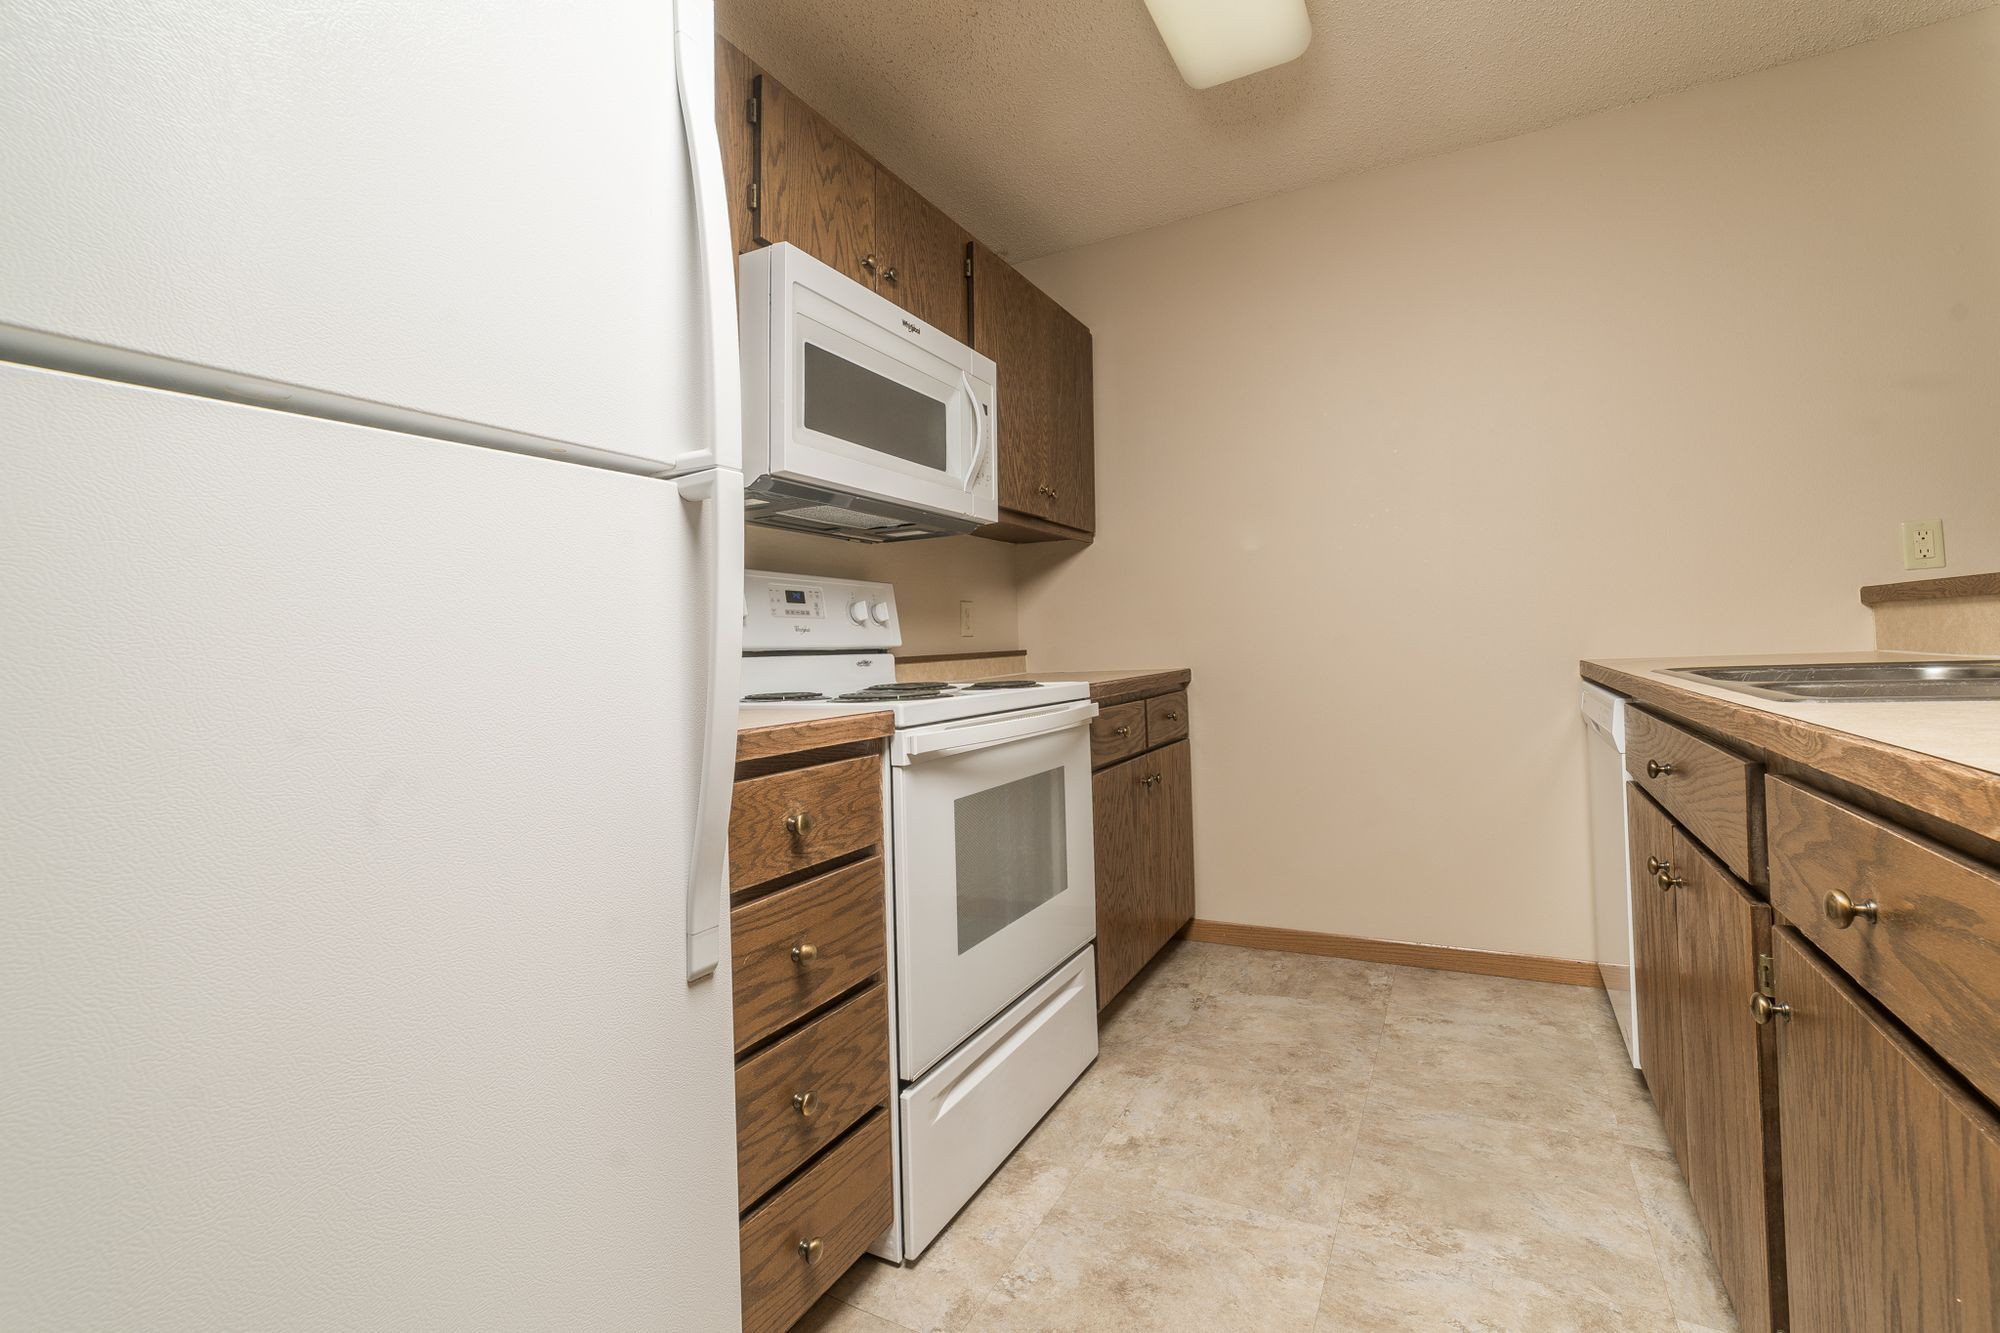 Apartments Near Augie Oxbow Estates for Augustana College Students in Sioux Falls, SD